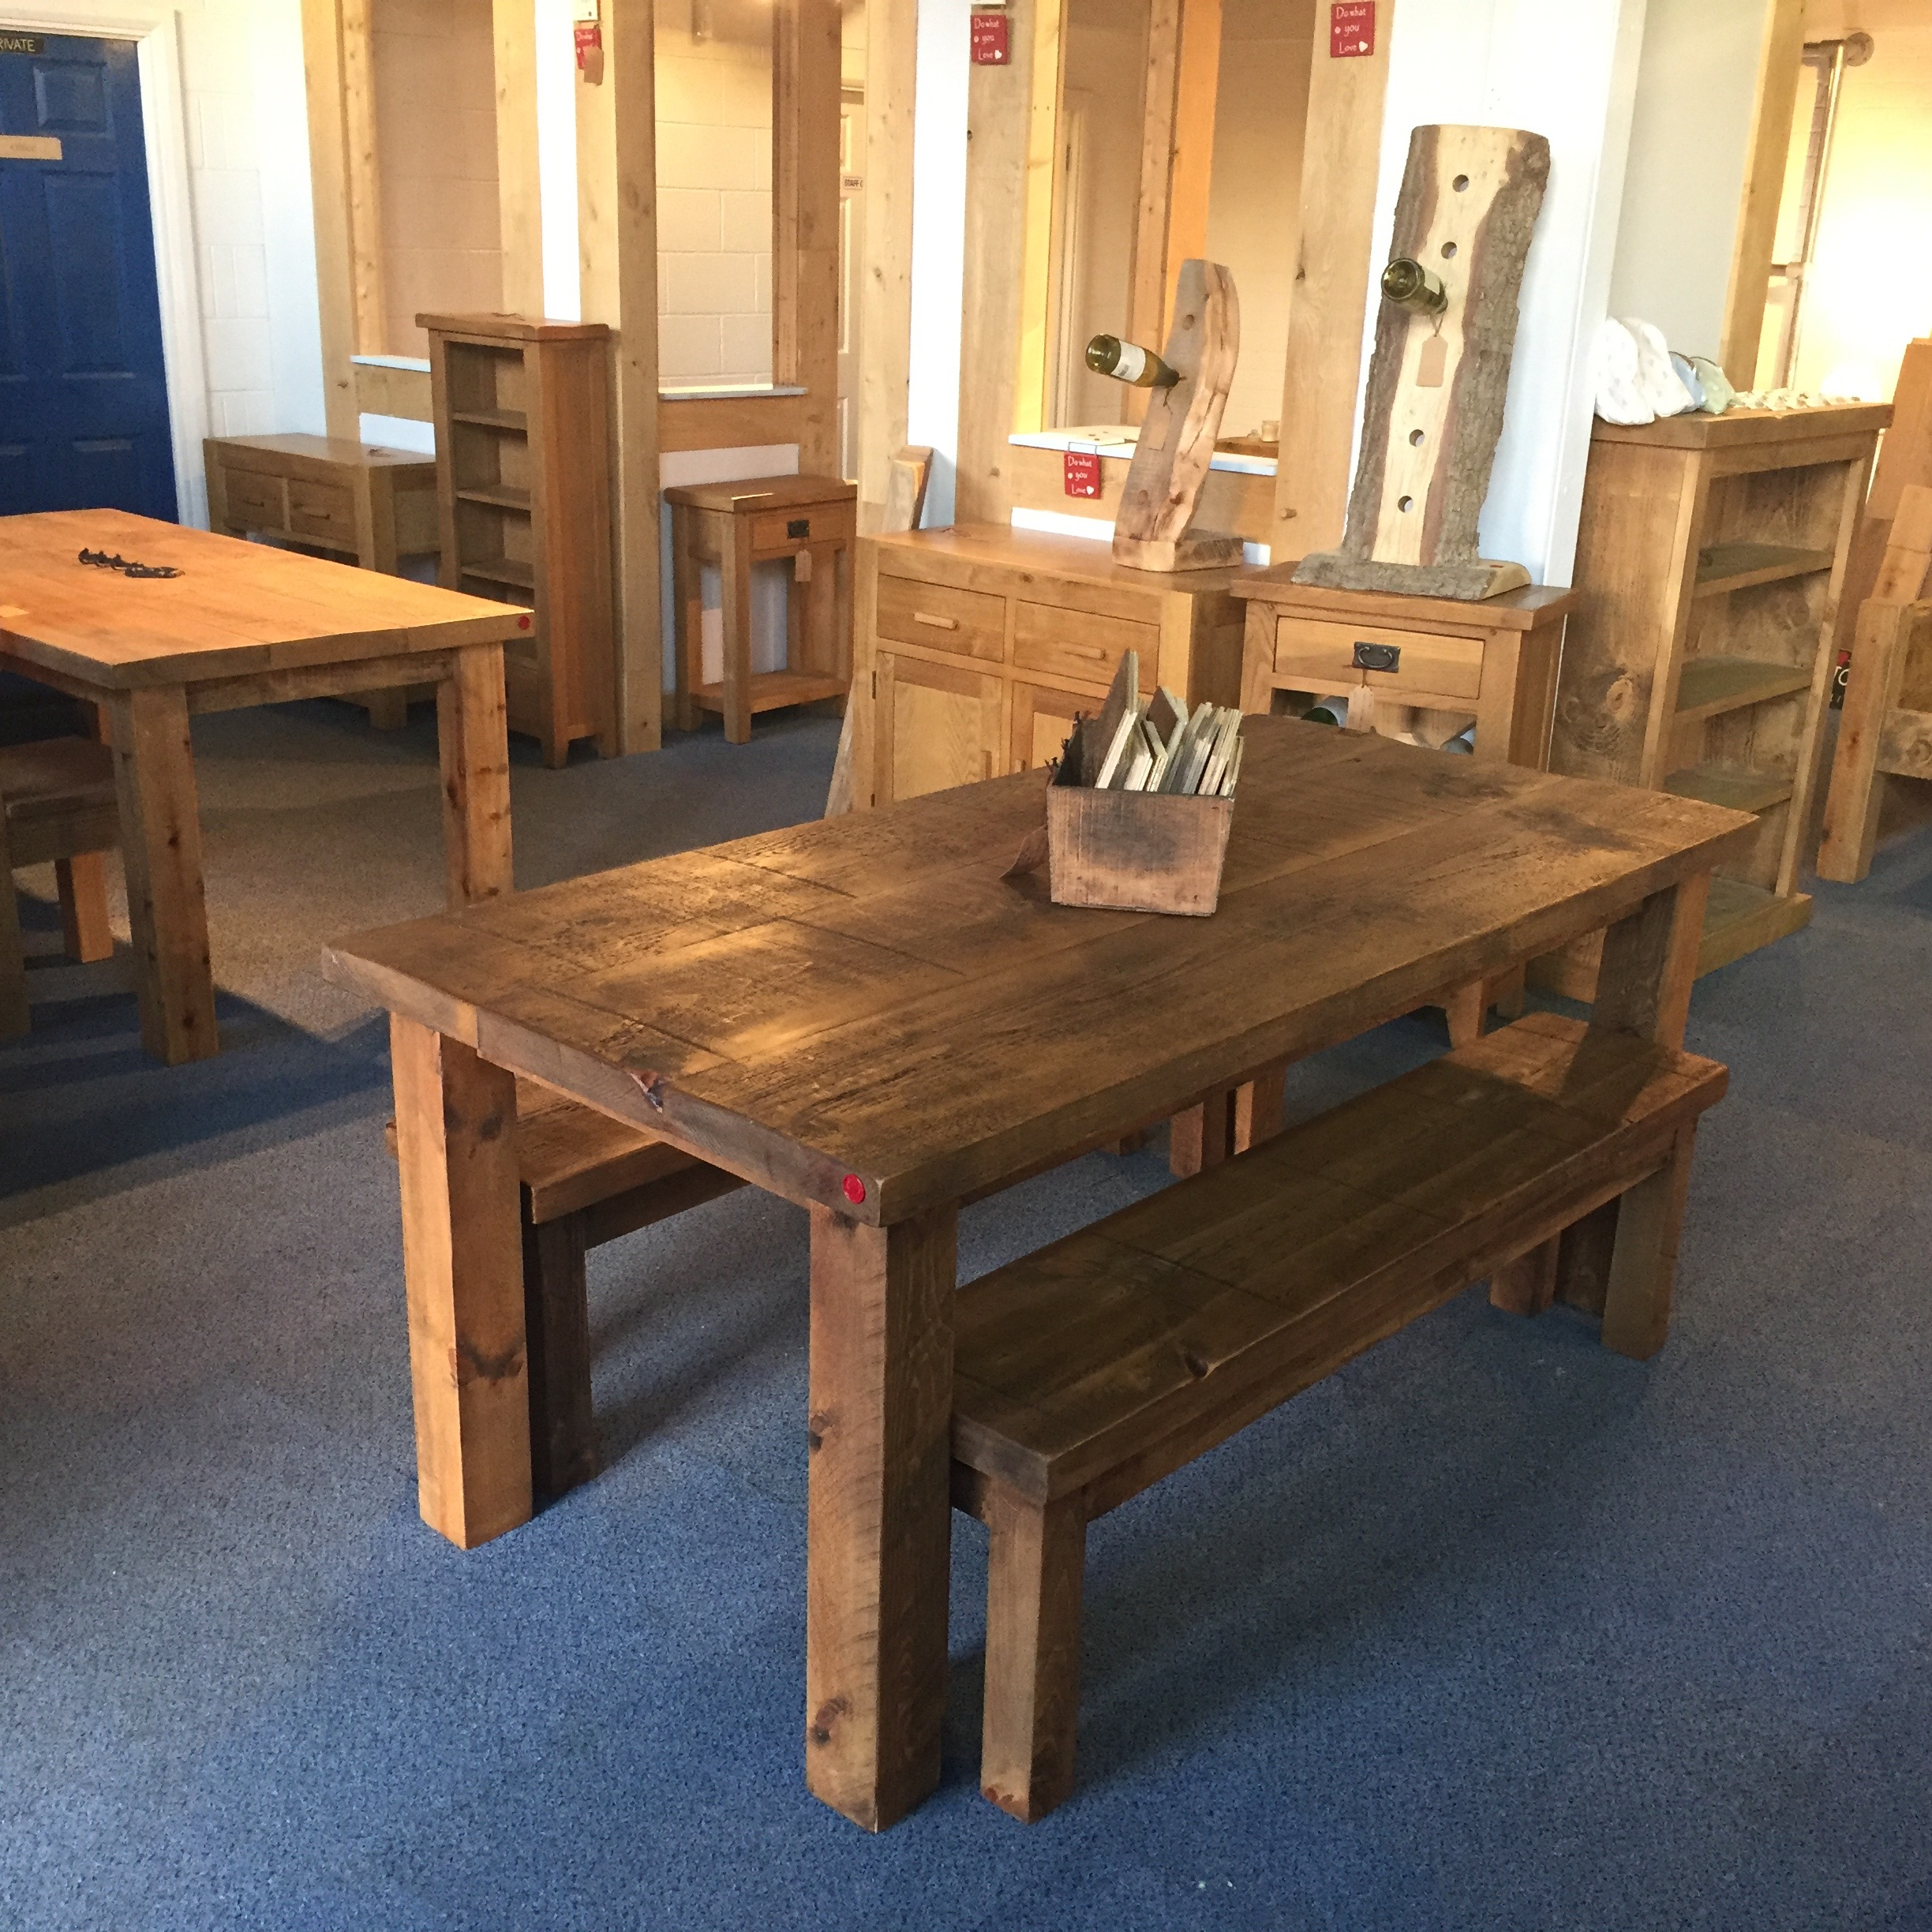 Handmade Dining table and benches